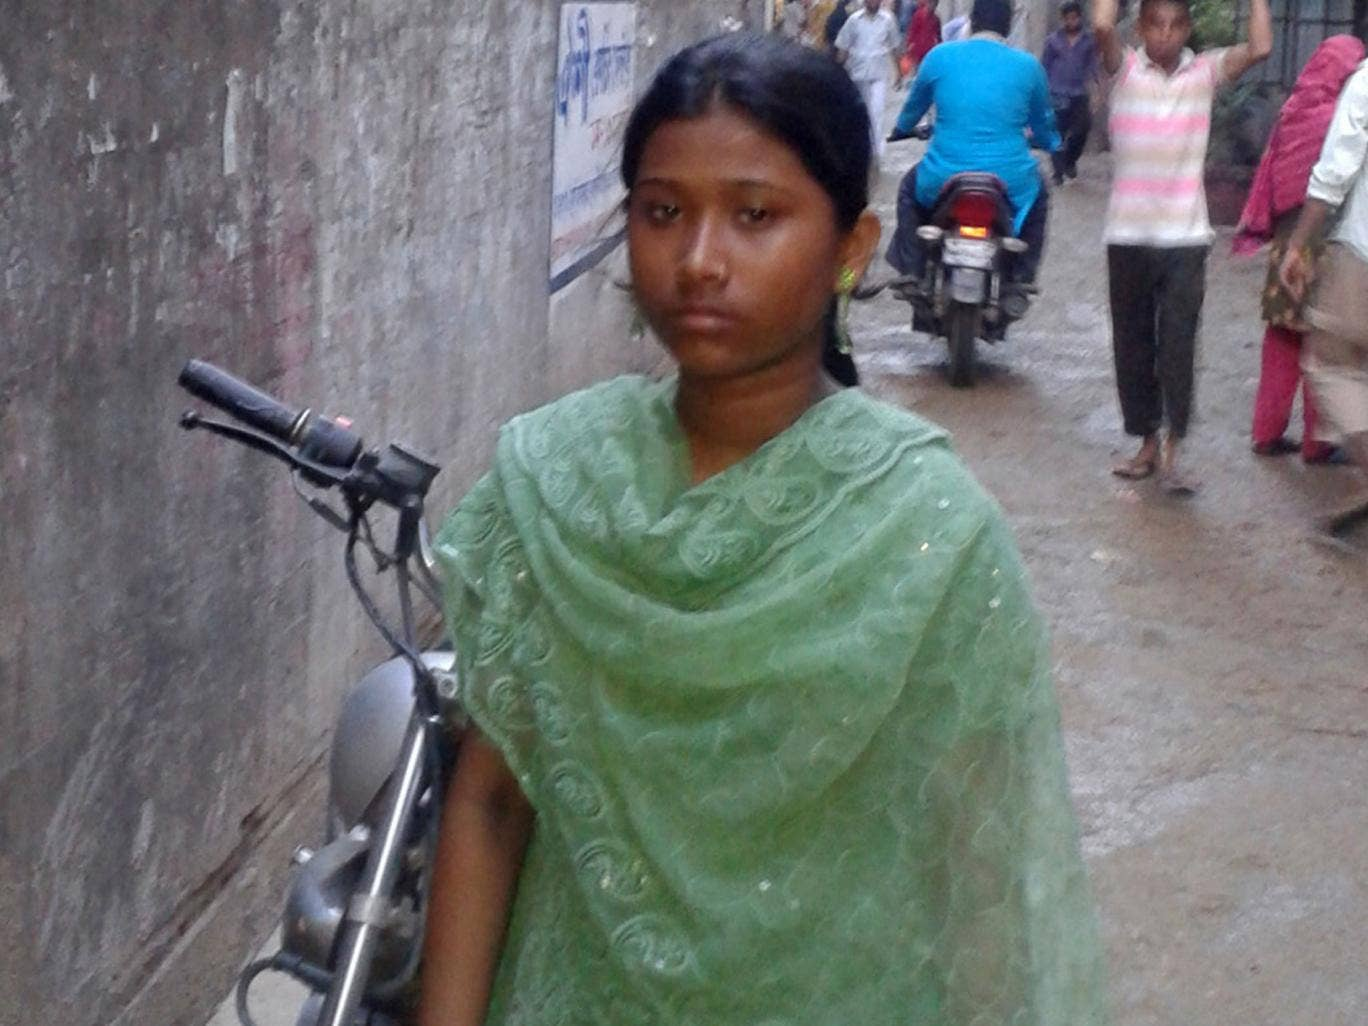 Tahmina Akhter Sadia was lucky to escape, but now has no job